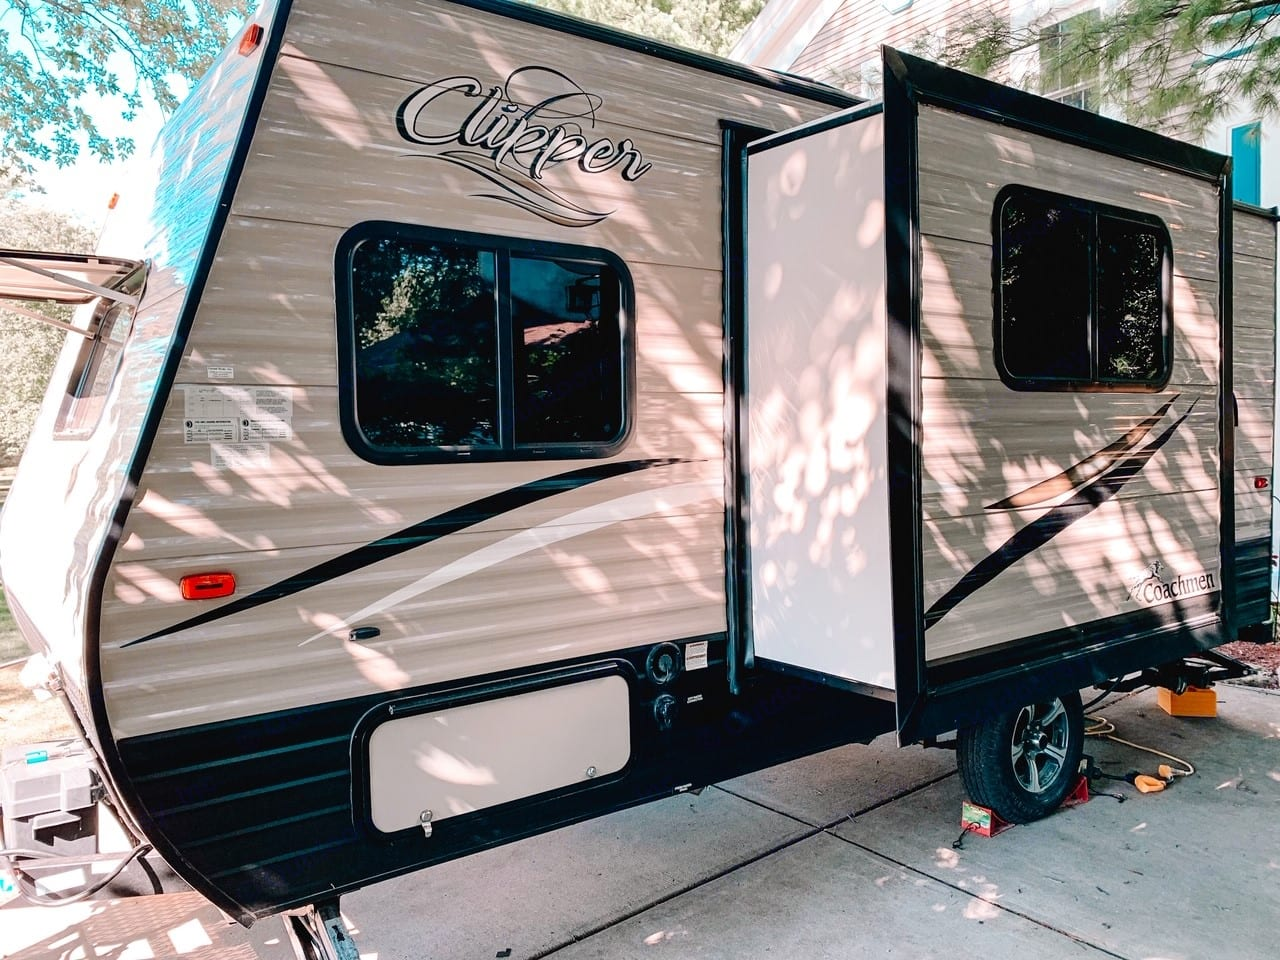 Left side with slide out. Coachmen Clipper 2018